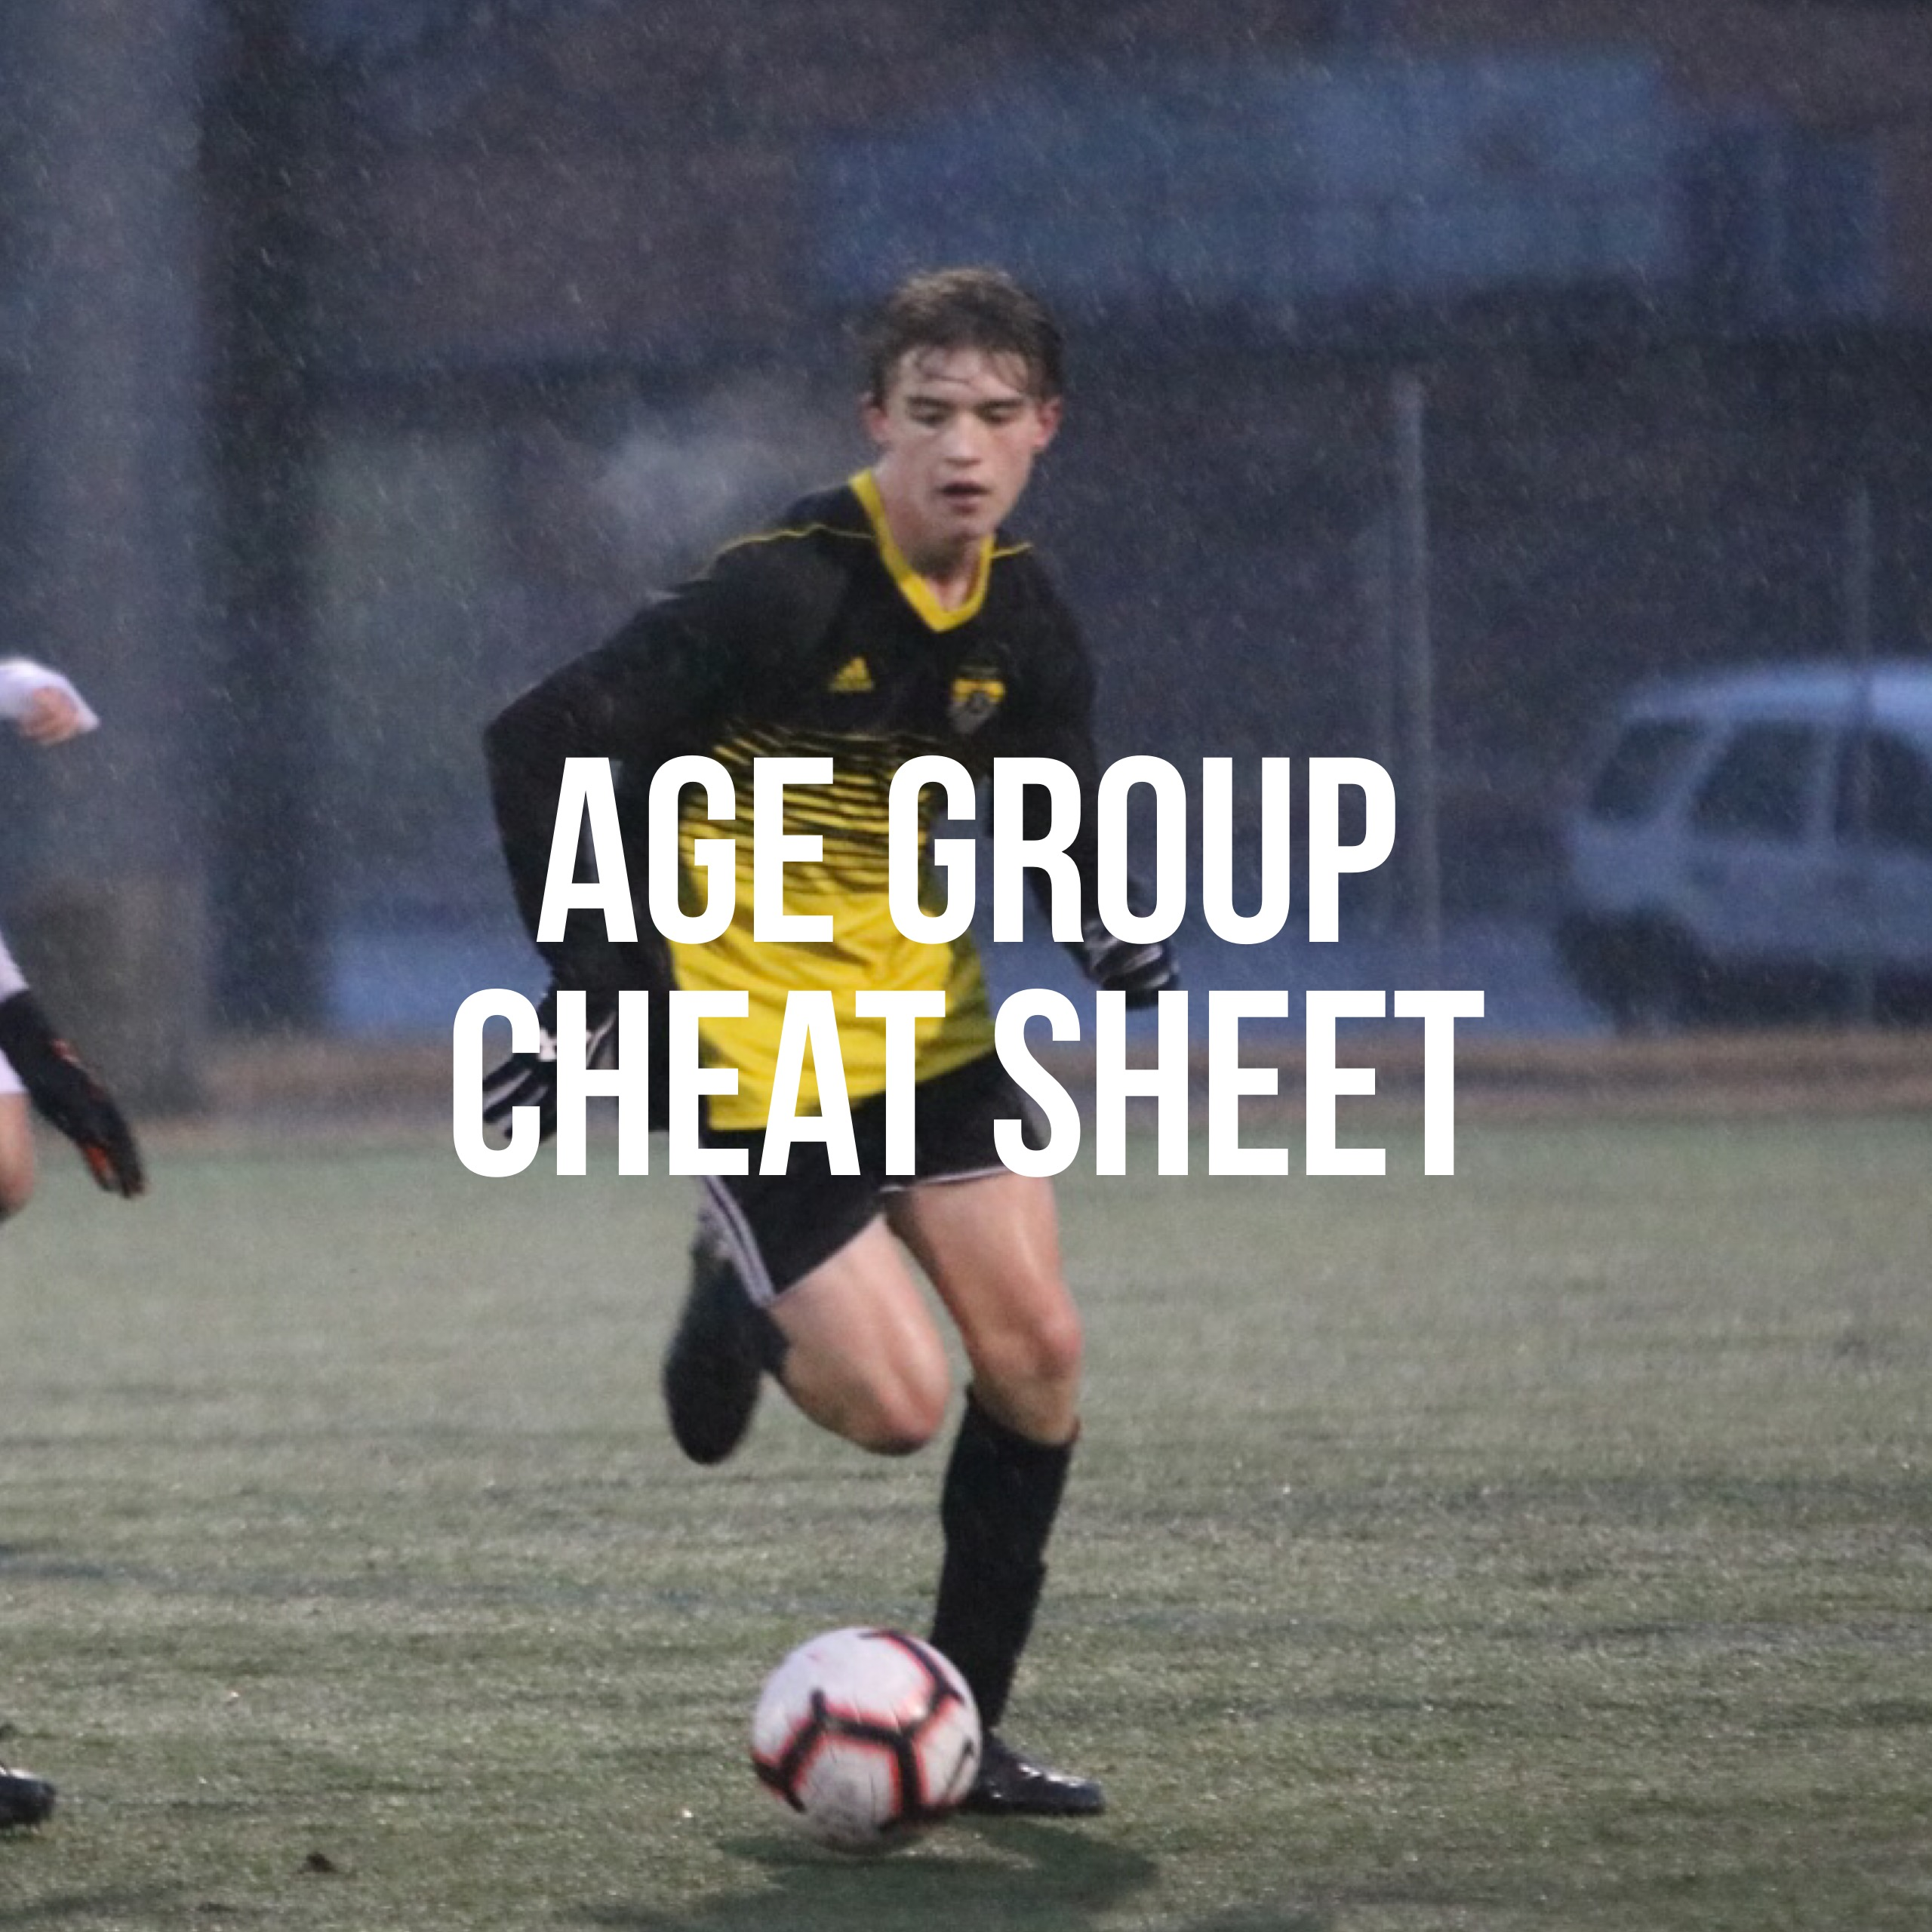 Age Group Cheat Sheet